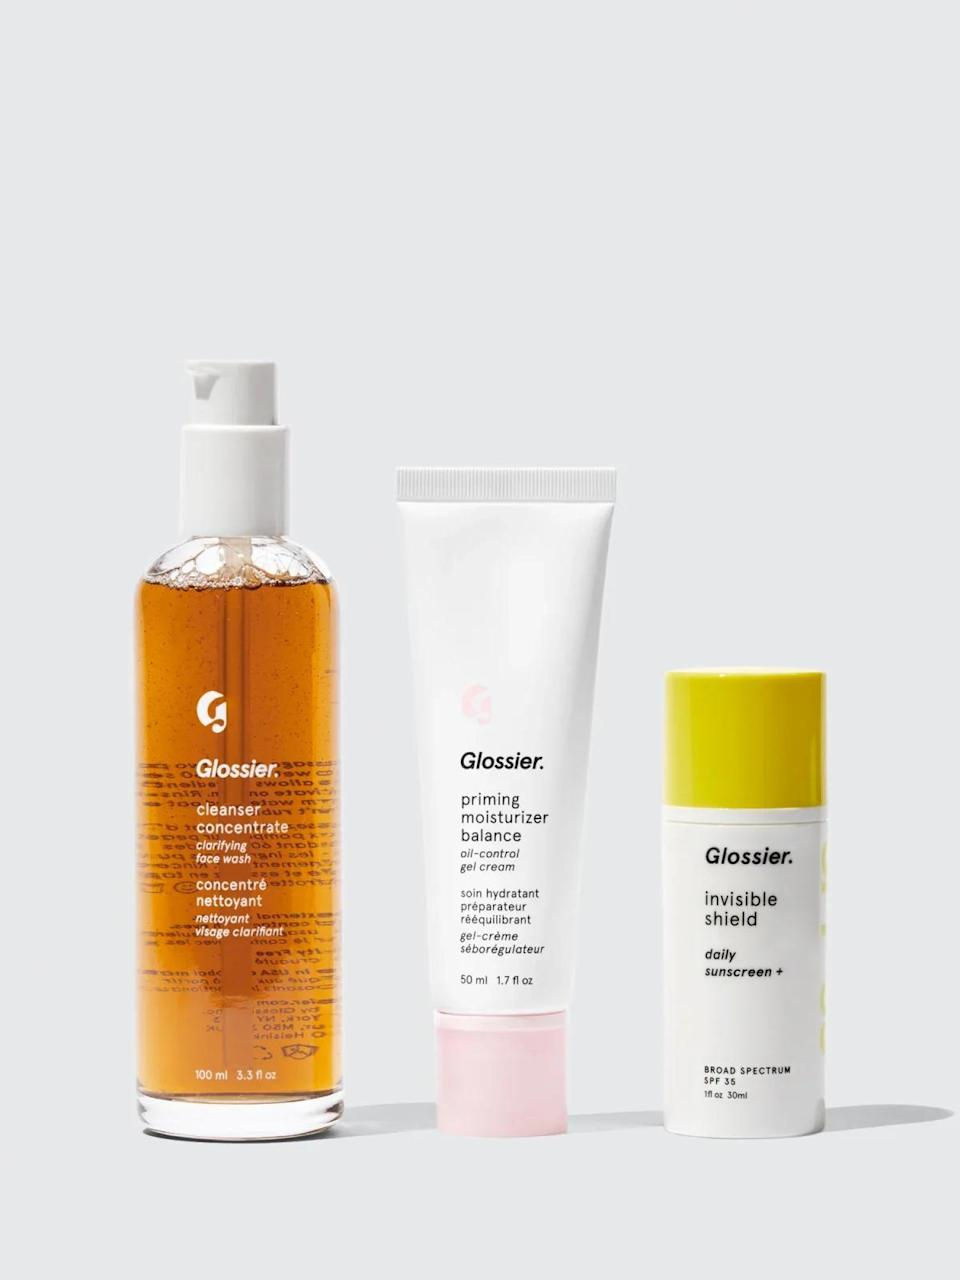 """<br><br><strong>Glossier</strong> Special #2: The Summer Skin Routine, $, available at <a href=""""https://www.glossier.com/products/special-2-the-summer-skin-routine"""" rel=""""nofollow noopener"""" target=""""_blank"""" data-ylk=""""slk:Glossier"""" class=""""link rapid-noclick-resp"""">Glossier</a>"""